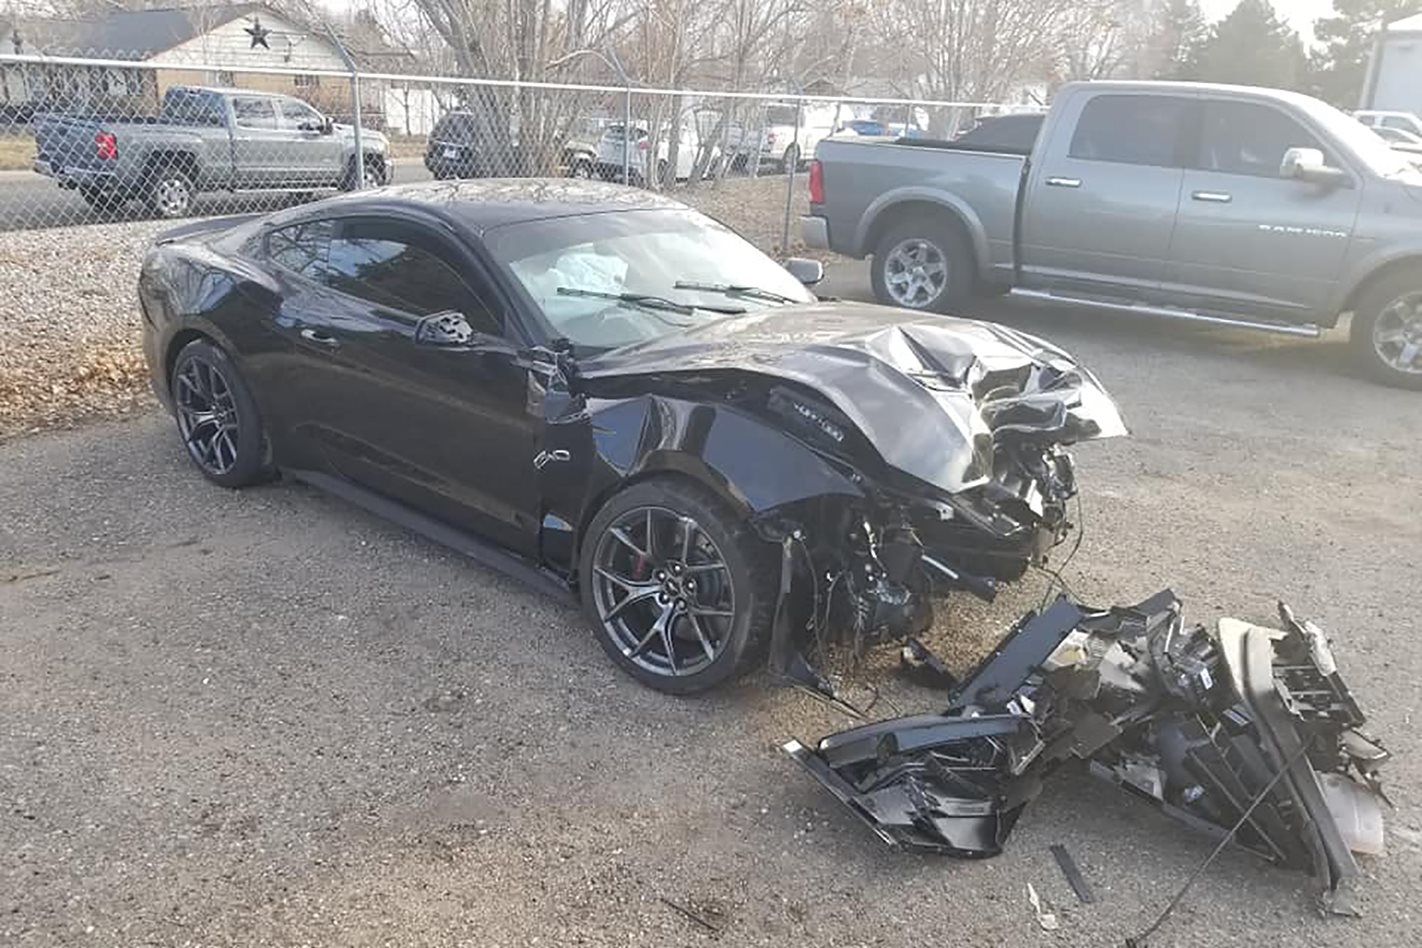 Dealership crashes customer's supercharged Mustang